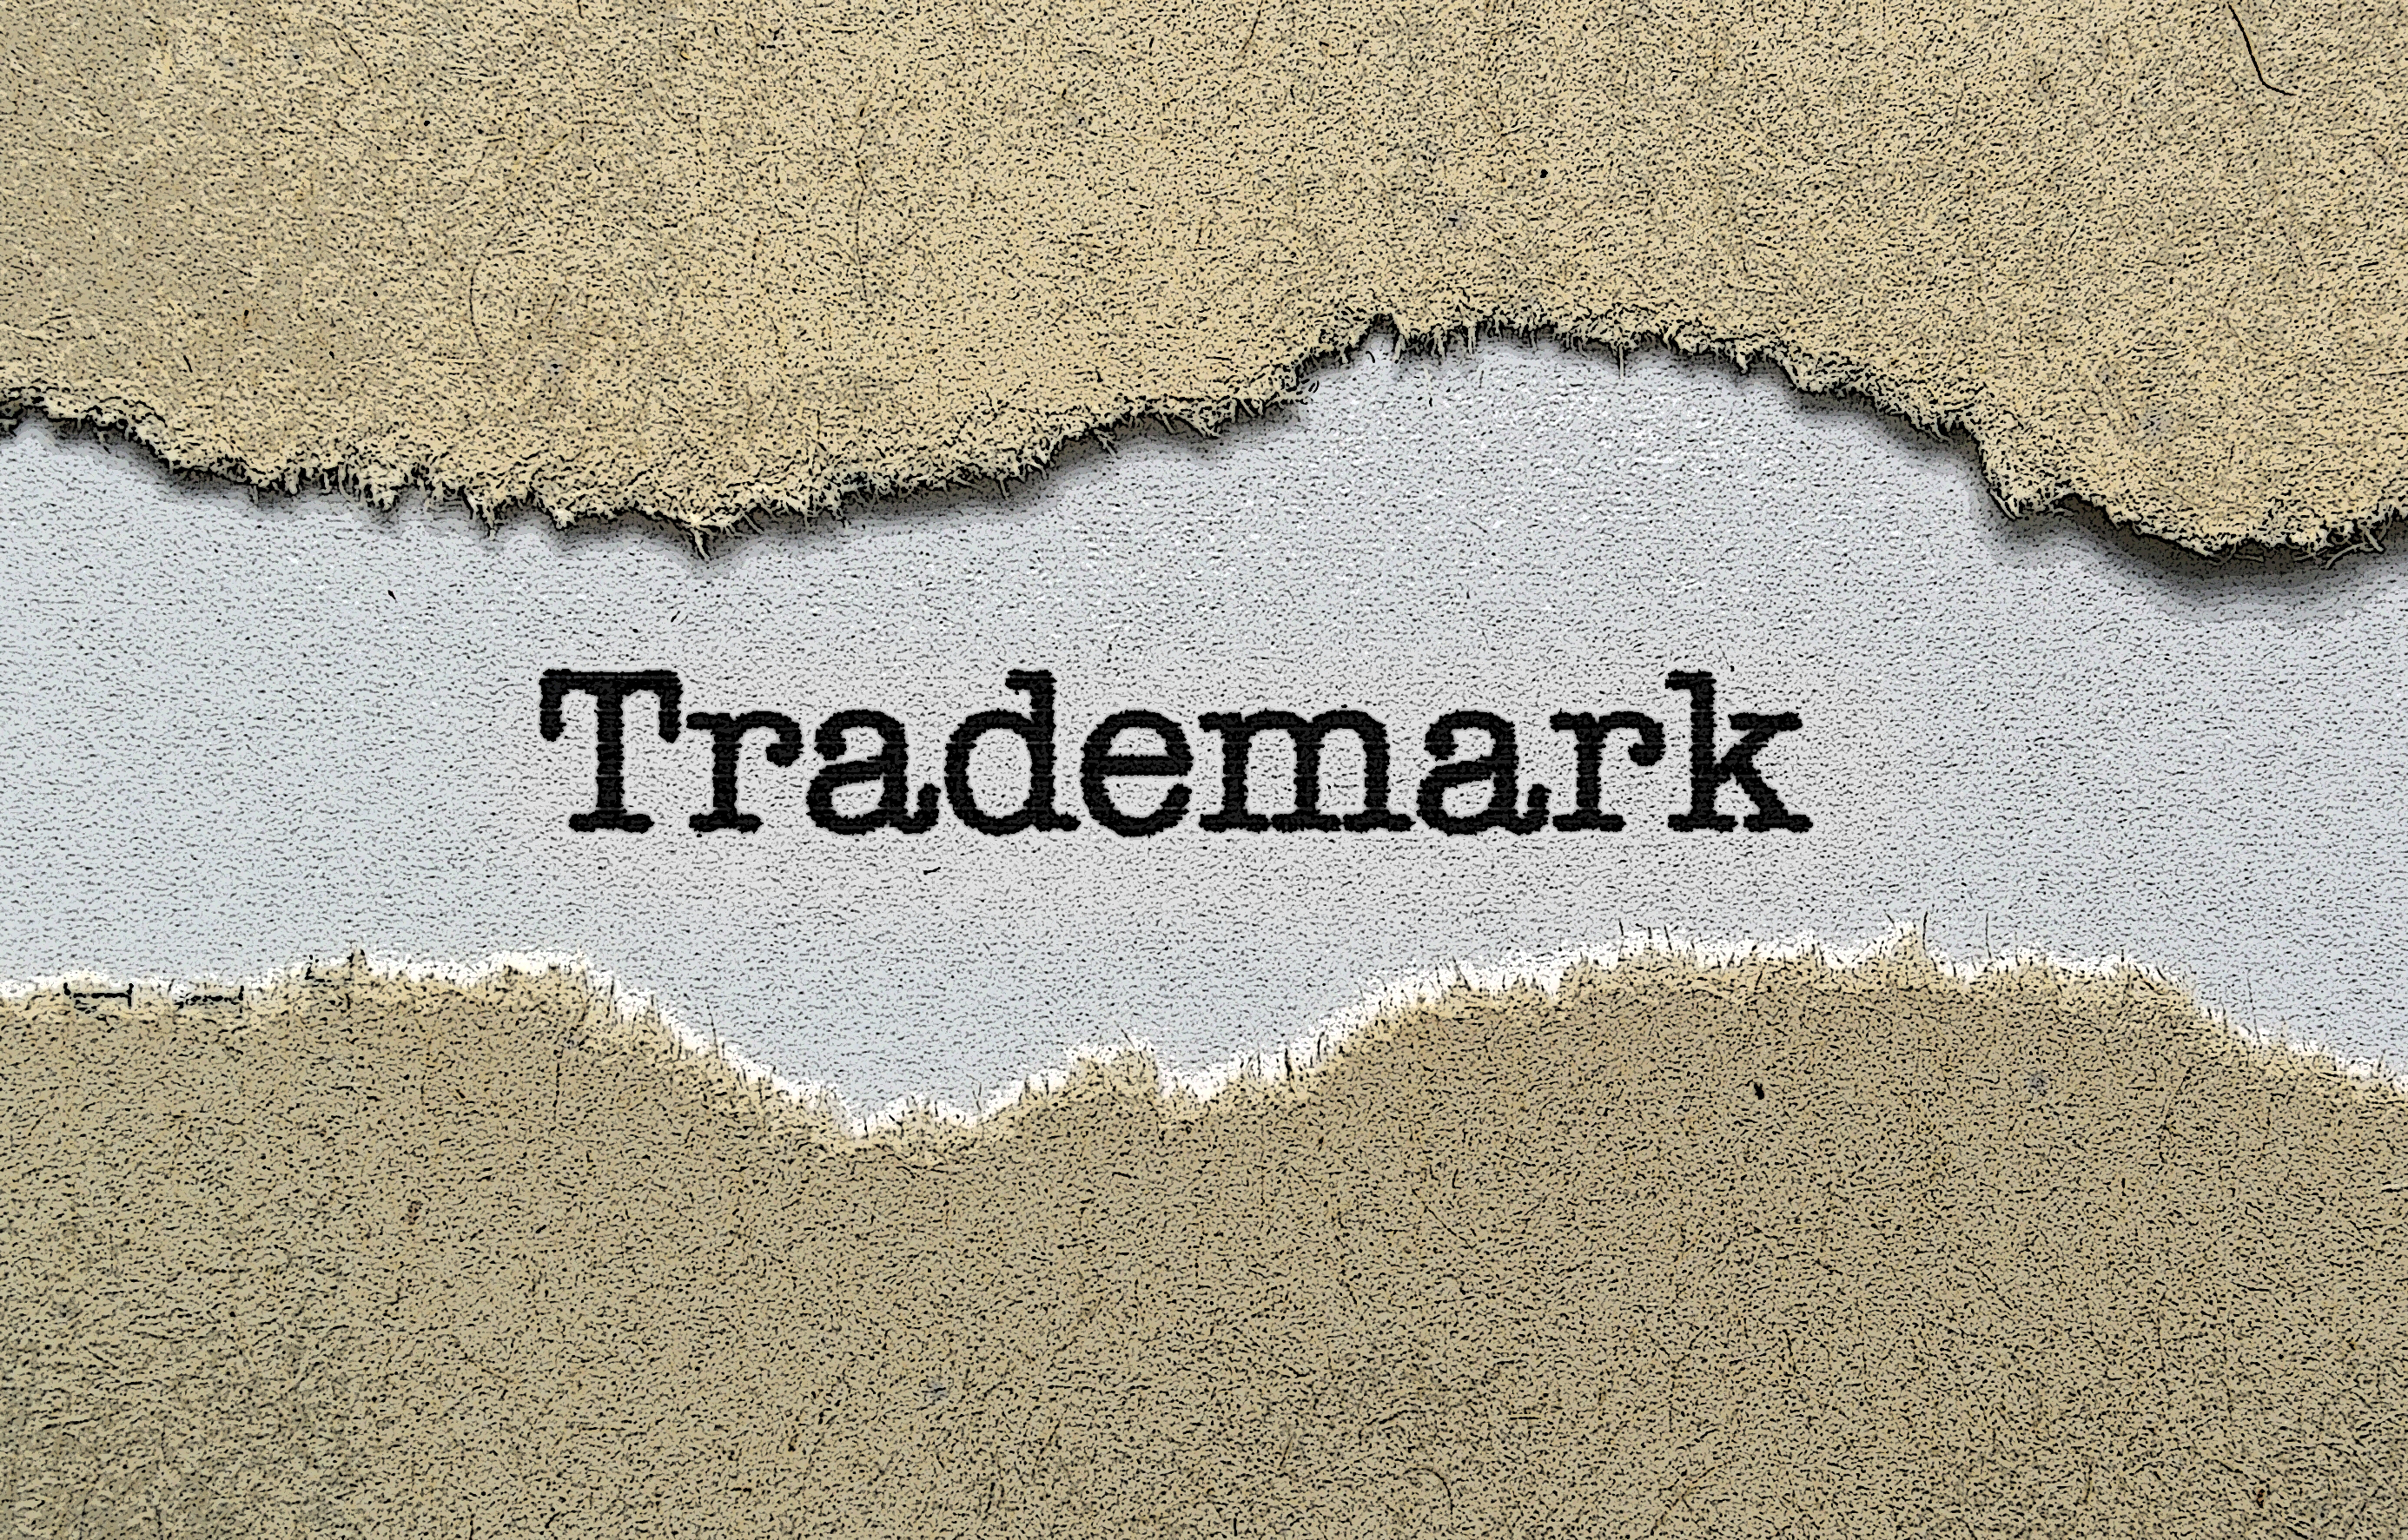 Trademark basics crafts law the whole business of placing trademarks on goods was invented thousands of years ago by crafts artisans eager to distinguish their works buycottarizona Gallery